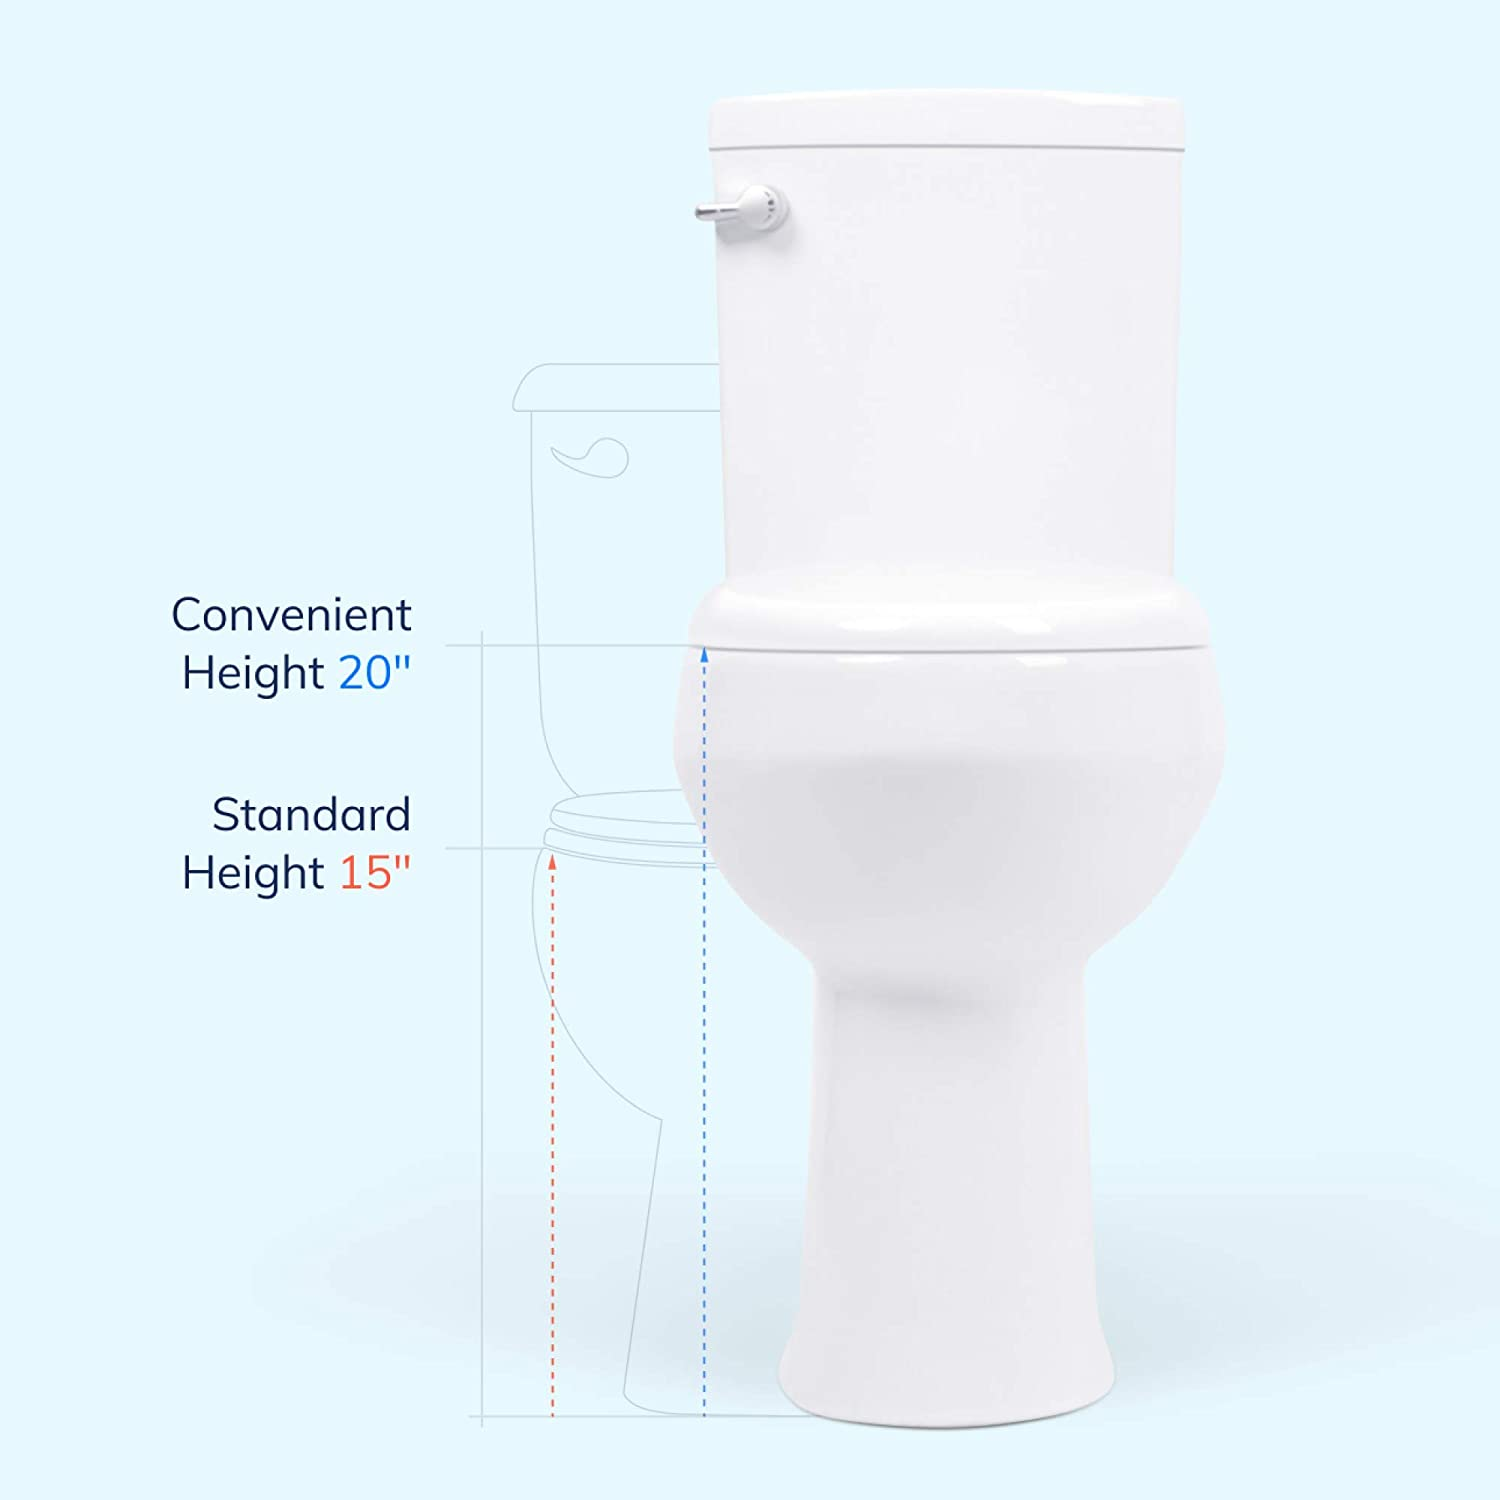 5. 20-inch Extra Tall Toilet